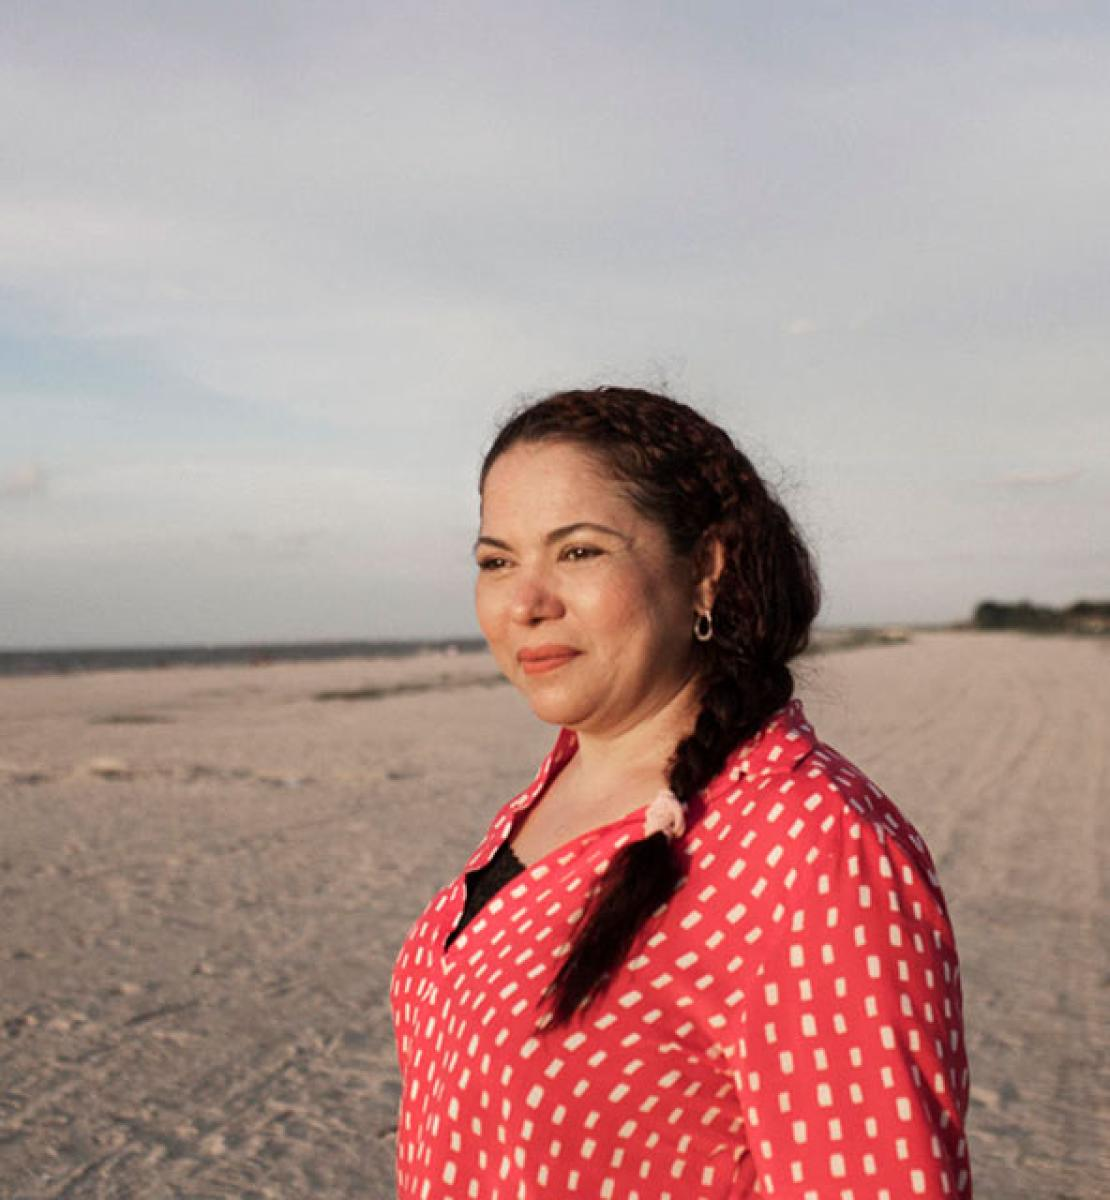 Woman in a red shirt looks out into the distance at a sandy location.